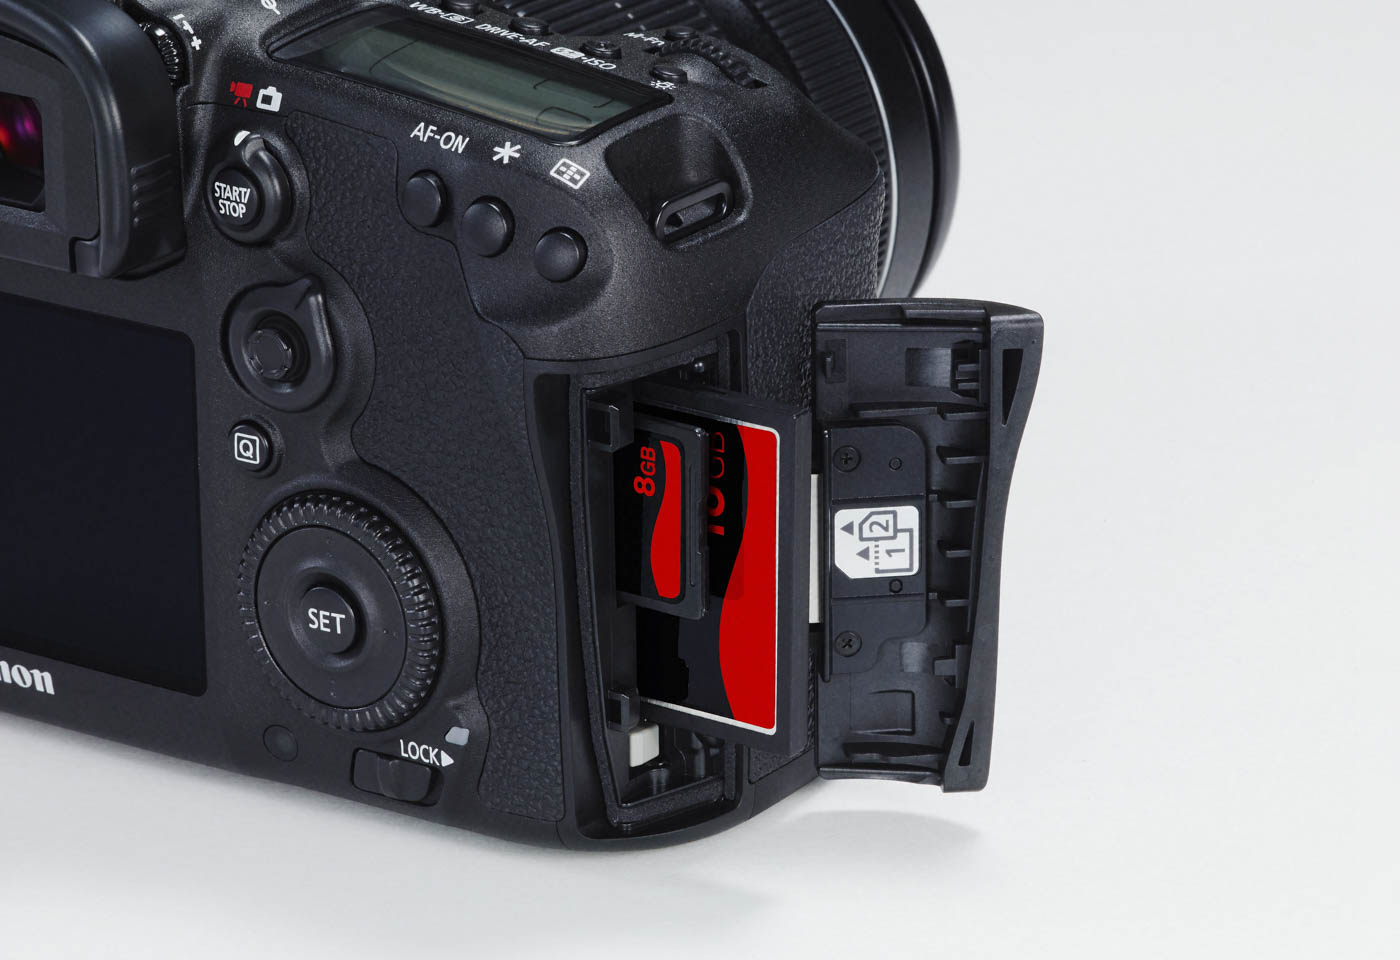 Dual CF card slots of the Canon EOS 7D Mark II DSLR camera